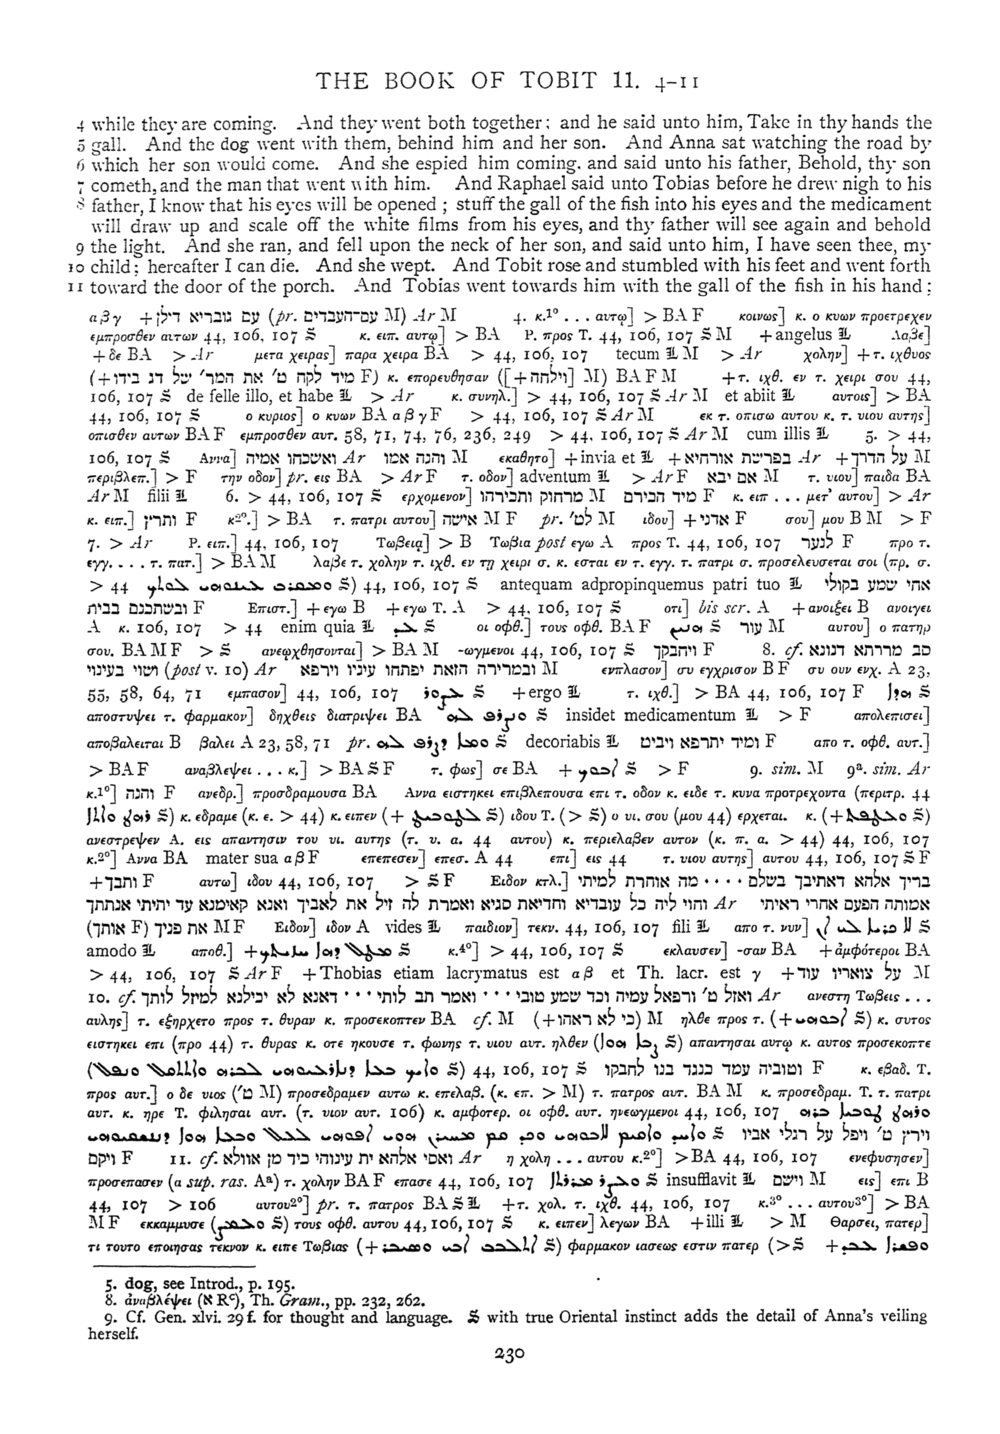 Image of page 230